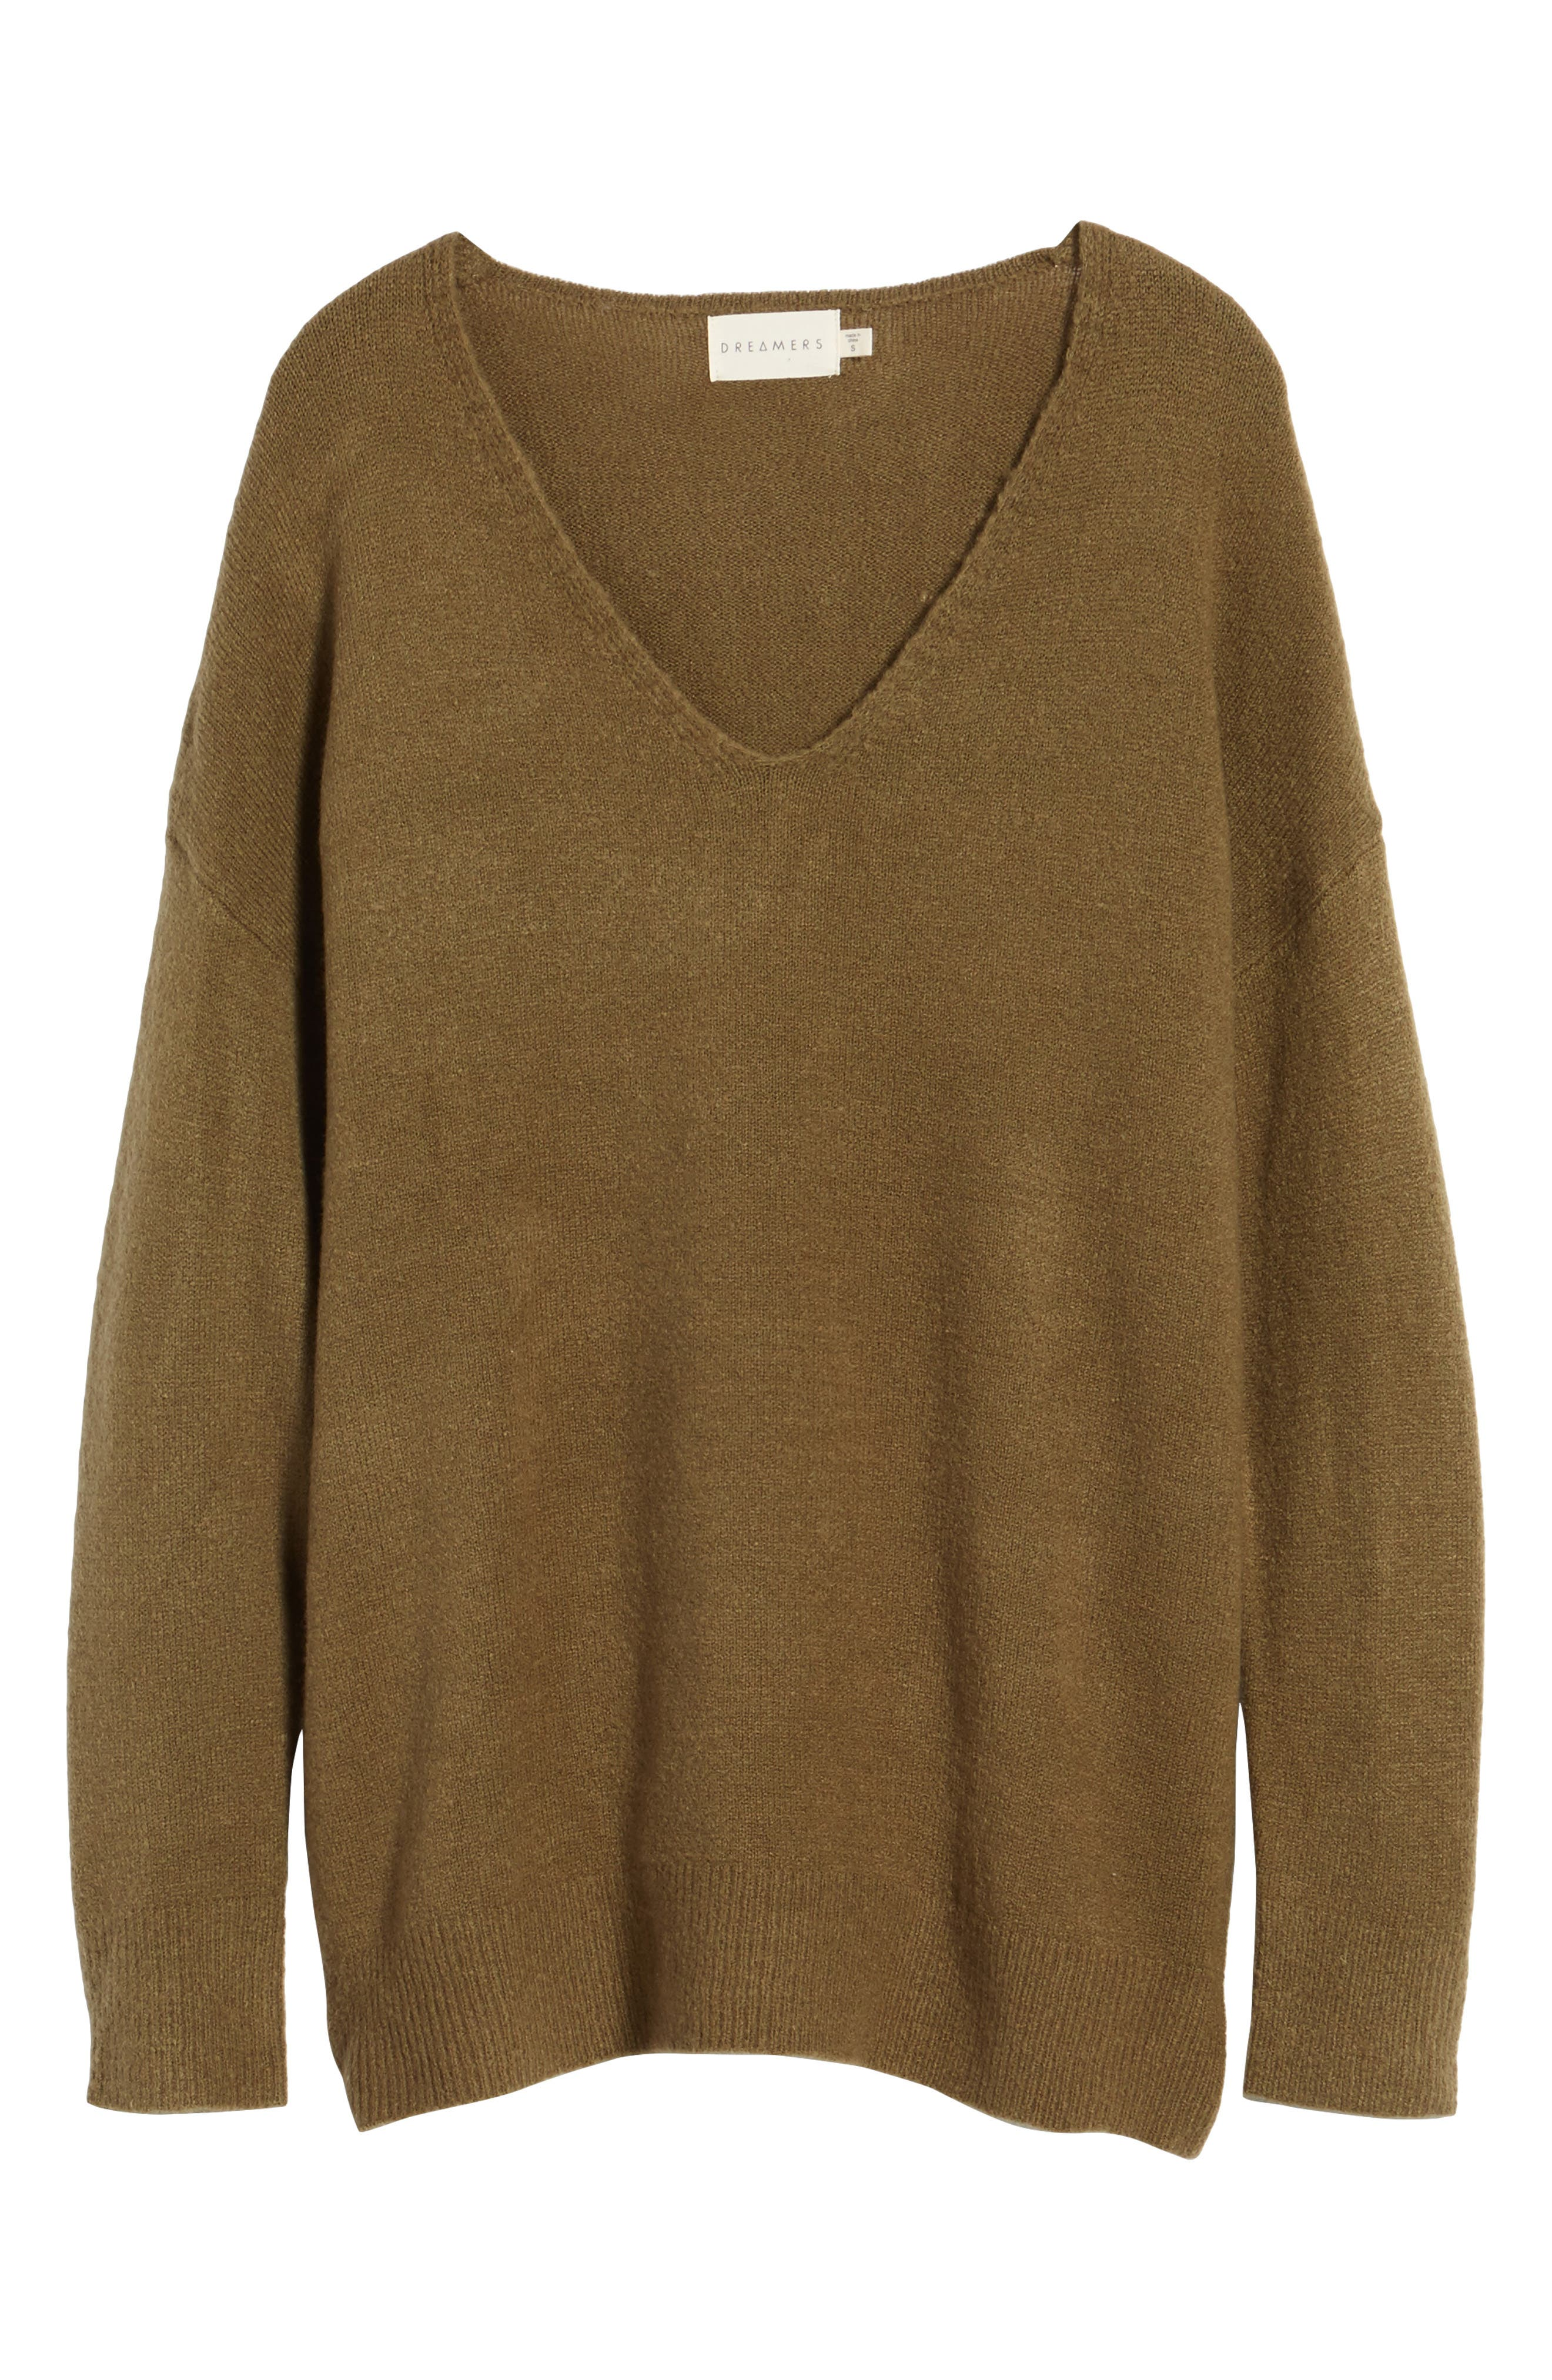 DREAMERS BY DEBUT,                             V-Neck Sweater,                             Alternate thumbnail 6, color,                             310